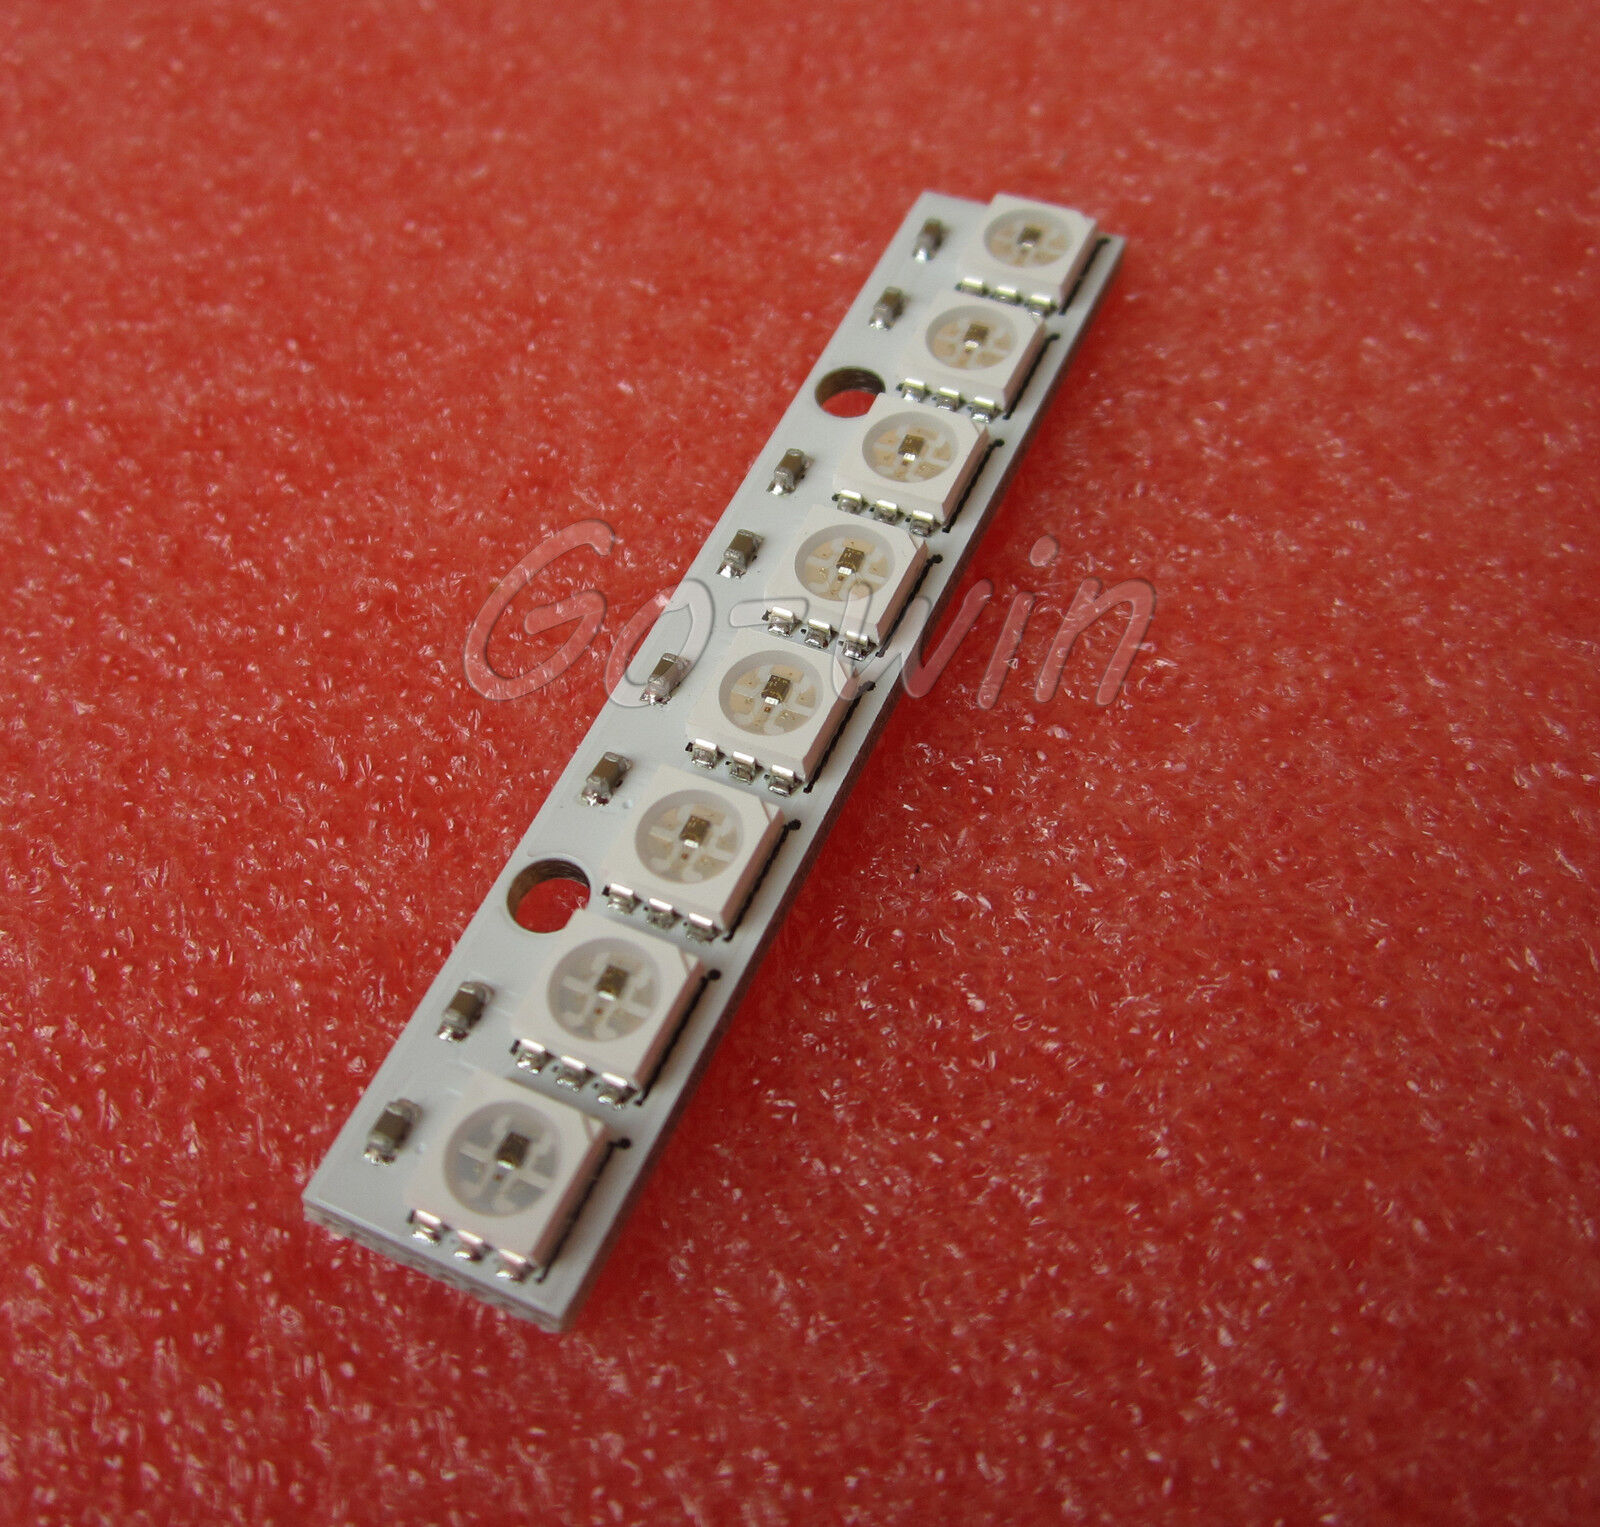 NEW 8x WS2812 5050 RGB LED Driver Board Chainable Board for Arduino L1ST